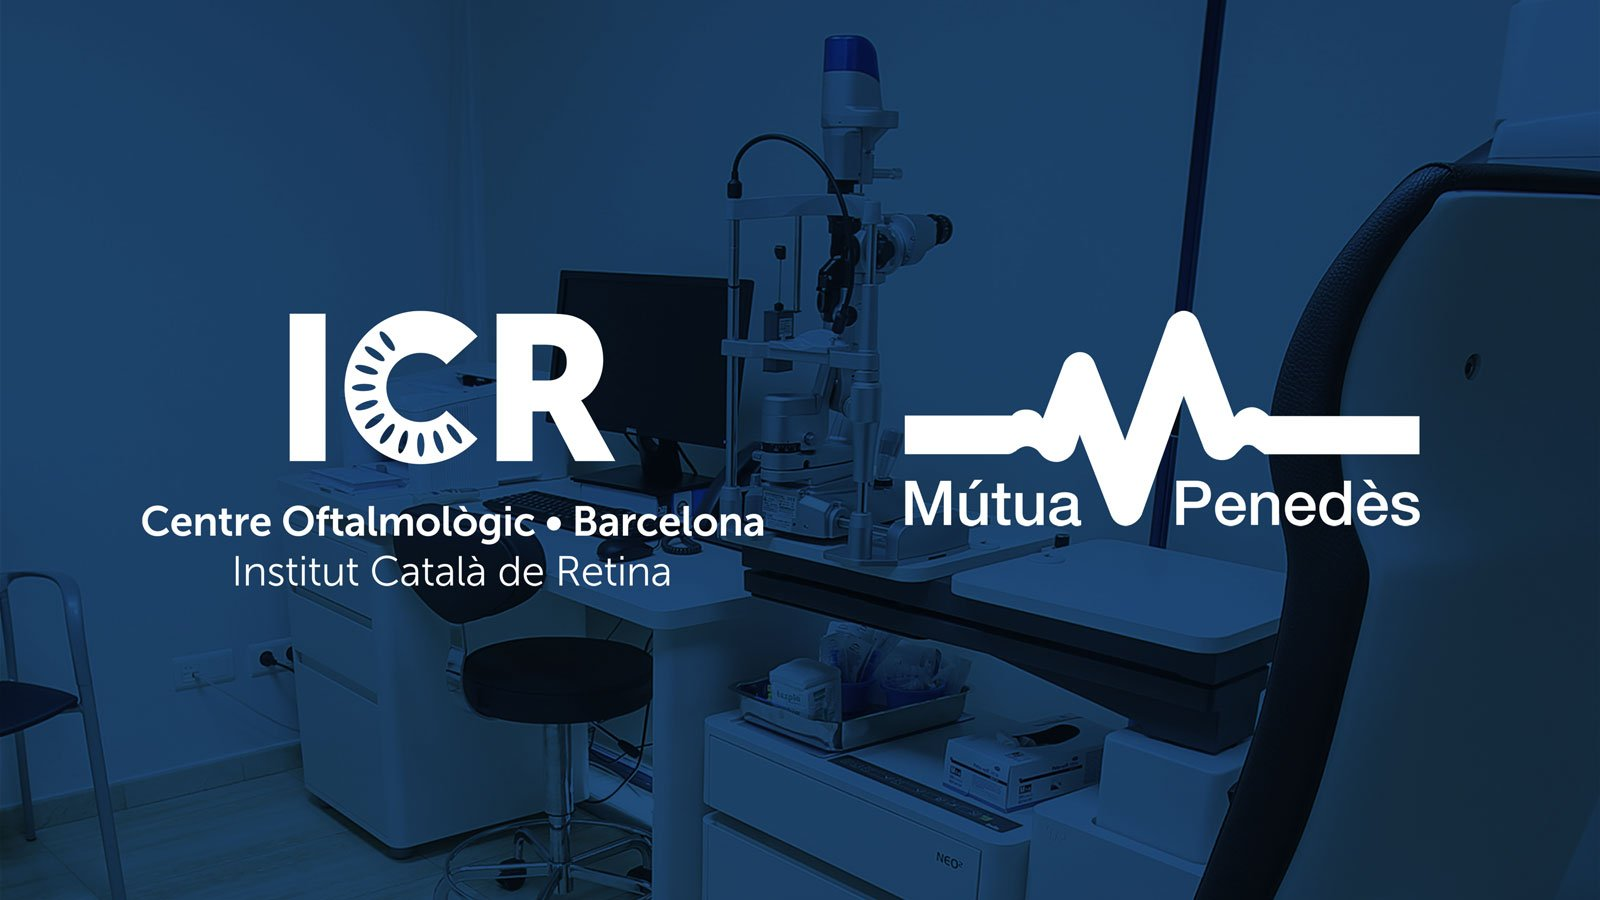 Mútua Penedès inaugurates in Vilafranca a new ophthalmological service by ICR